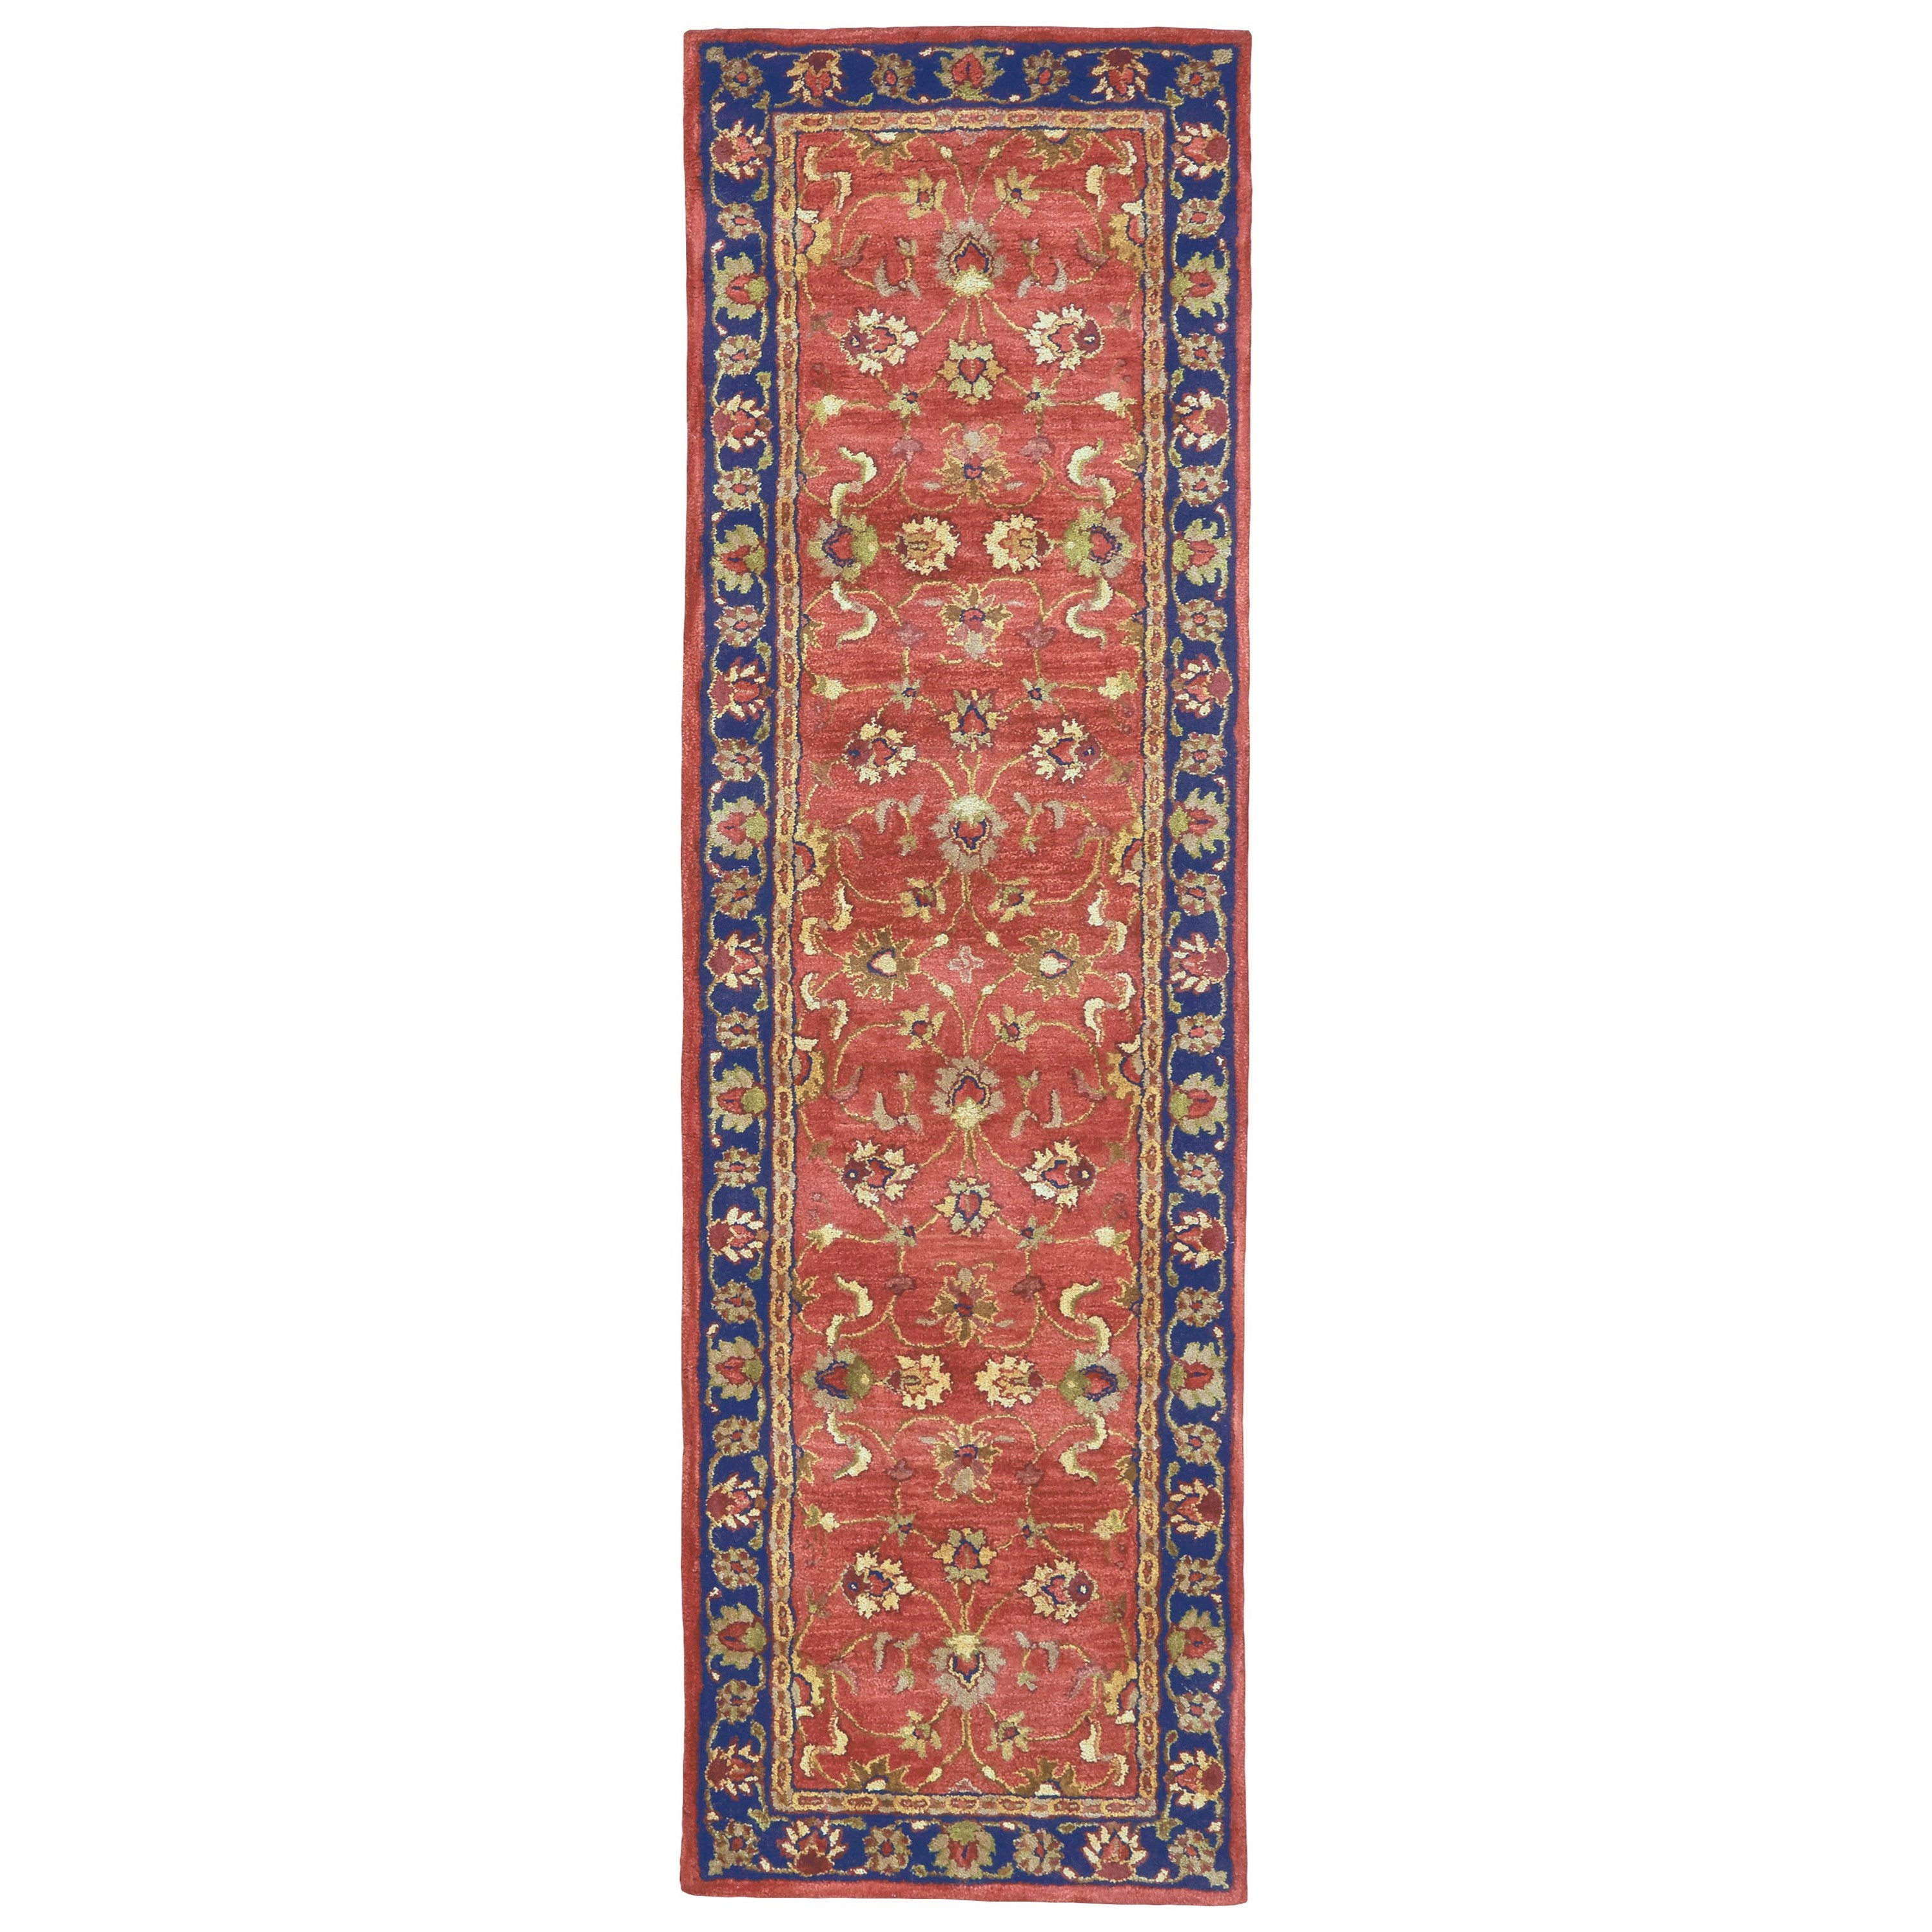 "Alexandra Red/Navy 2'-3"" x 8' Runner Rug by Feizy Rugs at Sprintz Furniture"